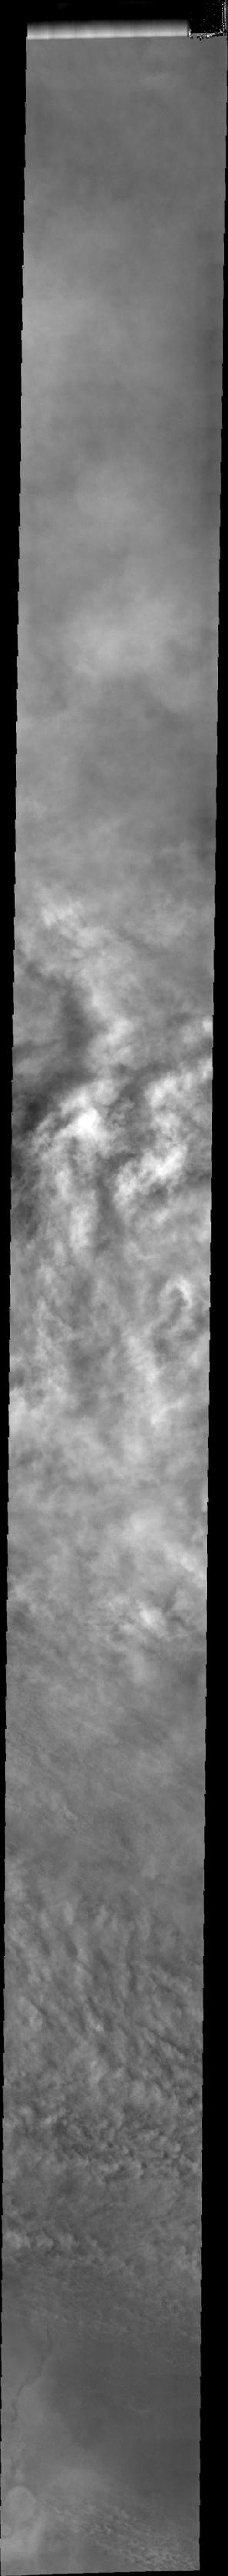 This image from NASA's Mars Odyssey shows bright cloud tops during Mars' southern hemisphere dust storm season.